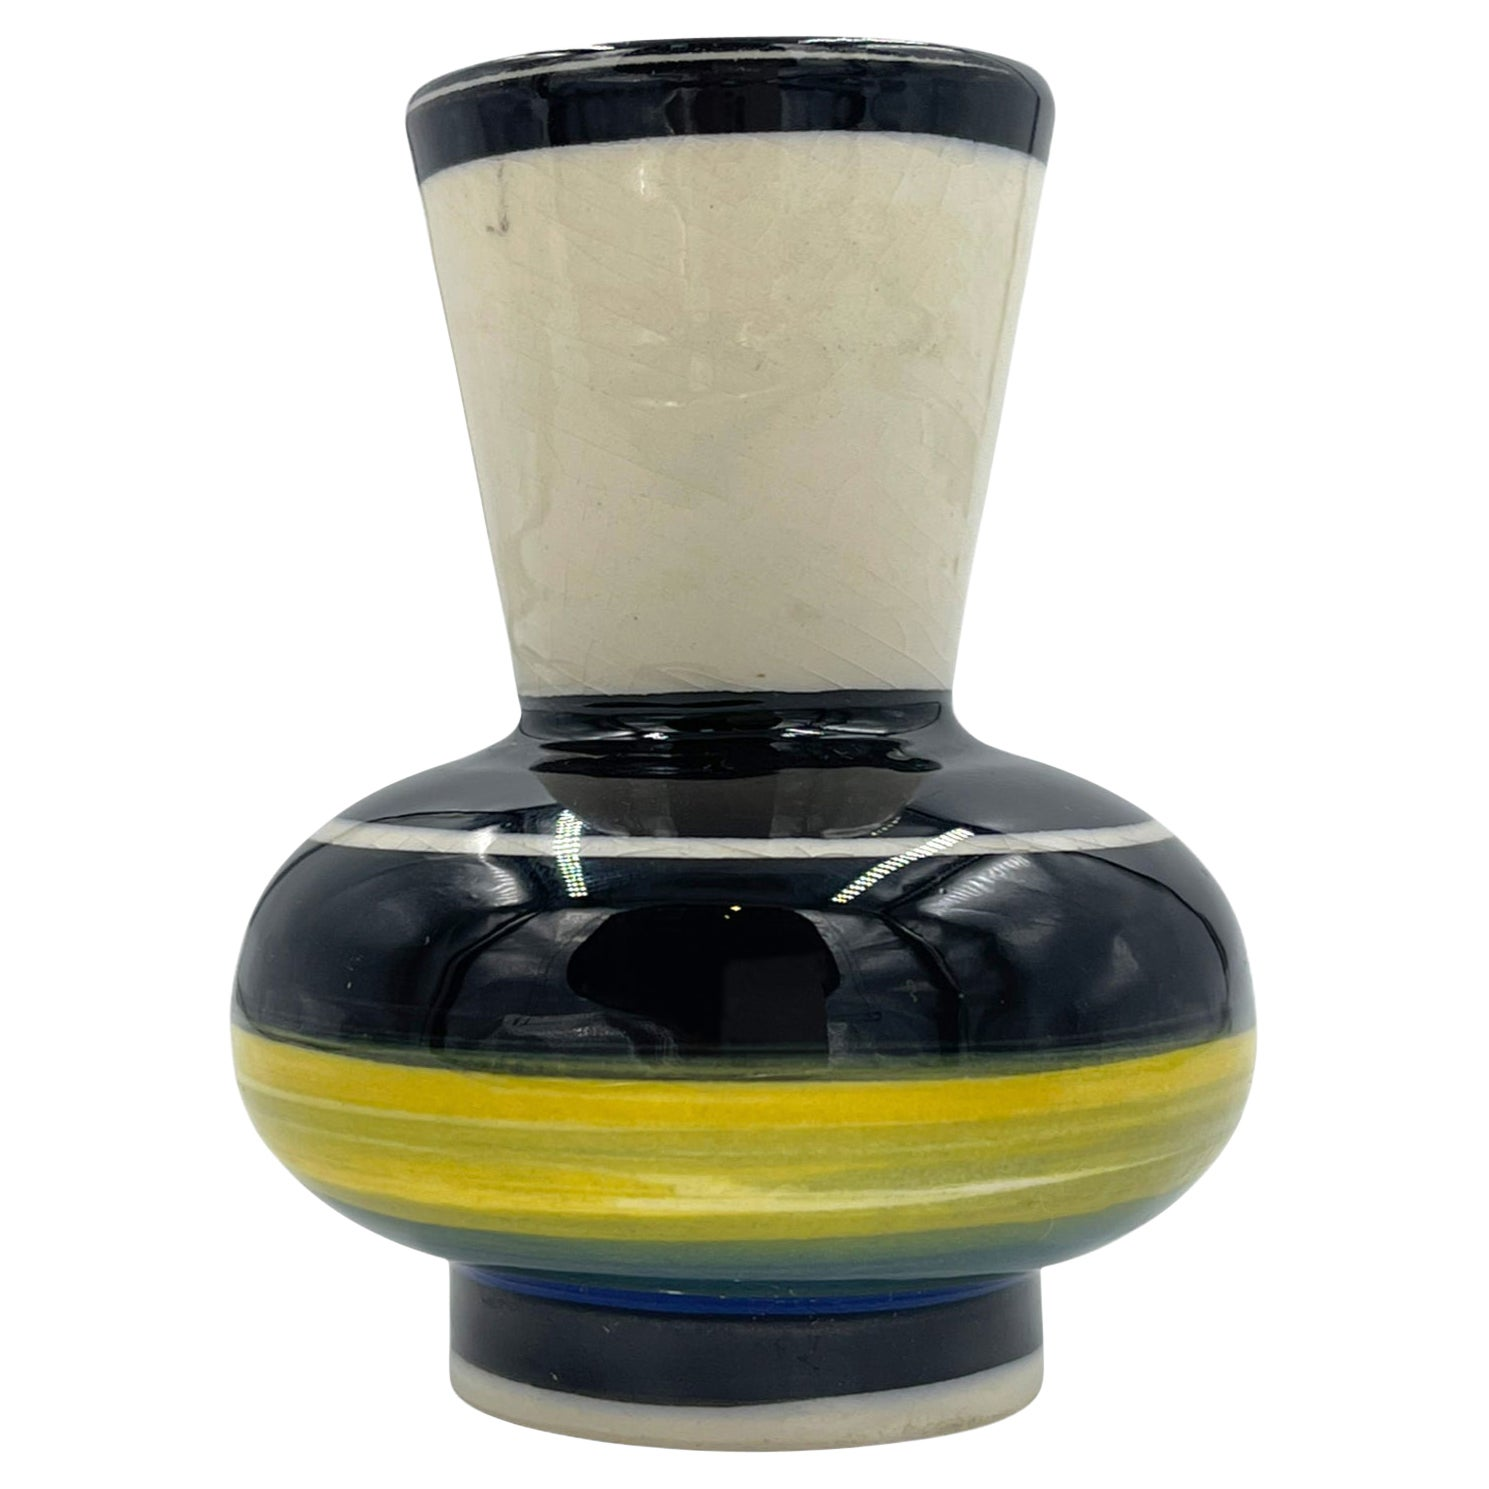 Peter Shire Expo Vase 1998